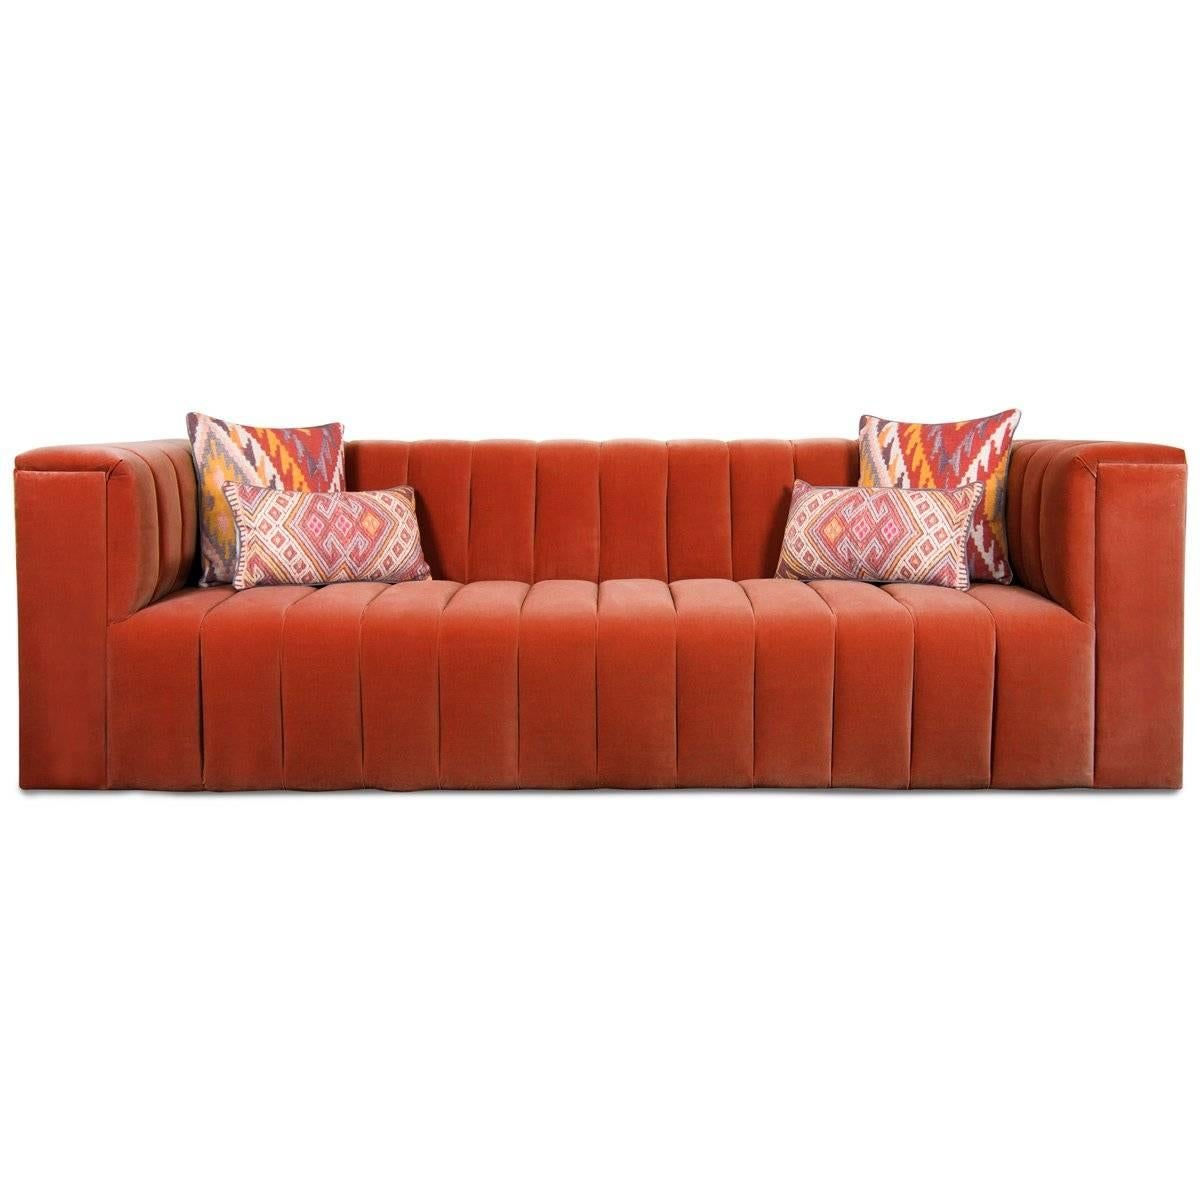 Etonnant Mid Century Style Paprika Velvet Fat Channel Tufted Chunky Thick Sofa For  Sale At 1stdibs